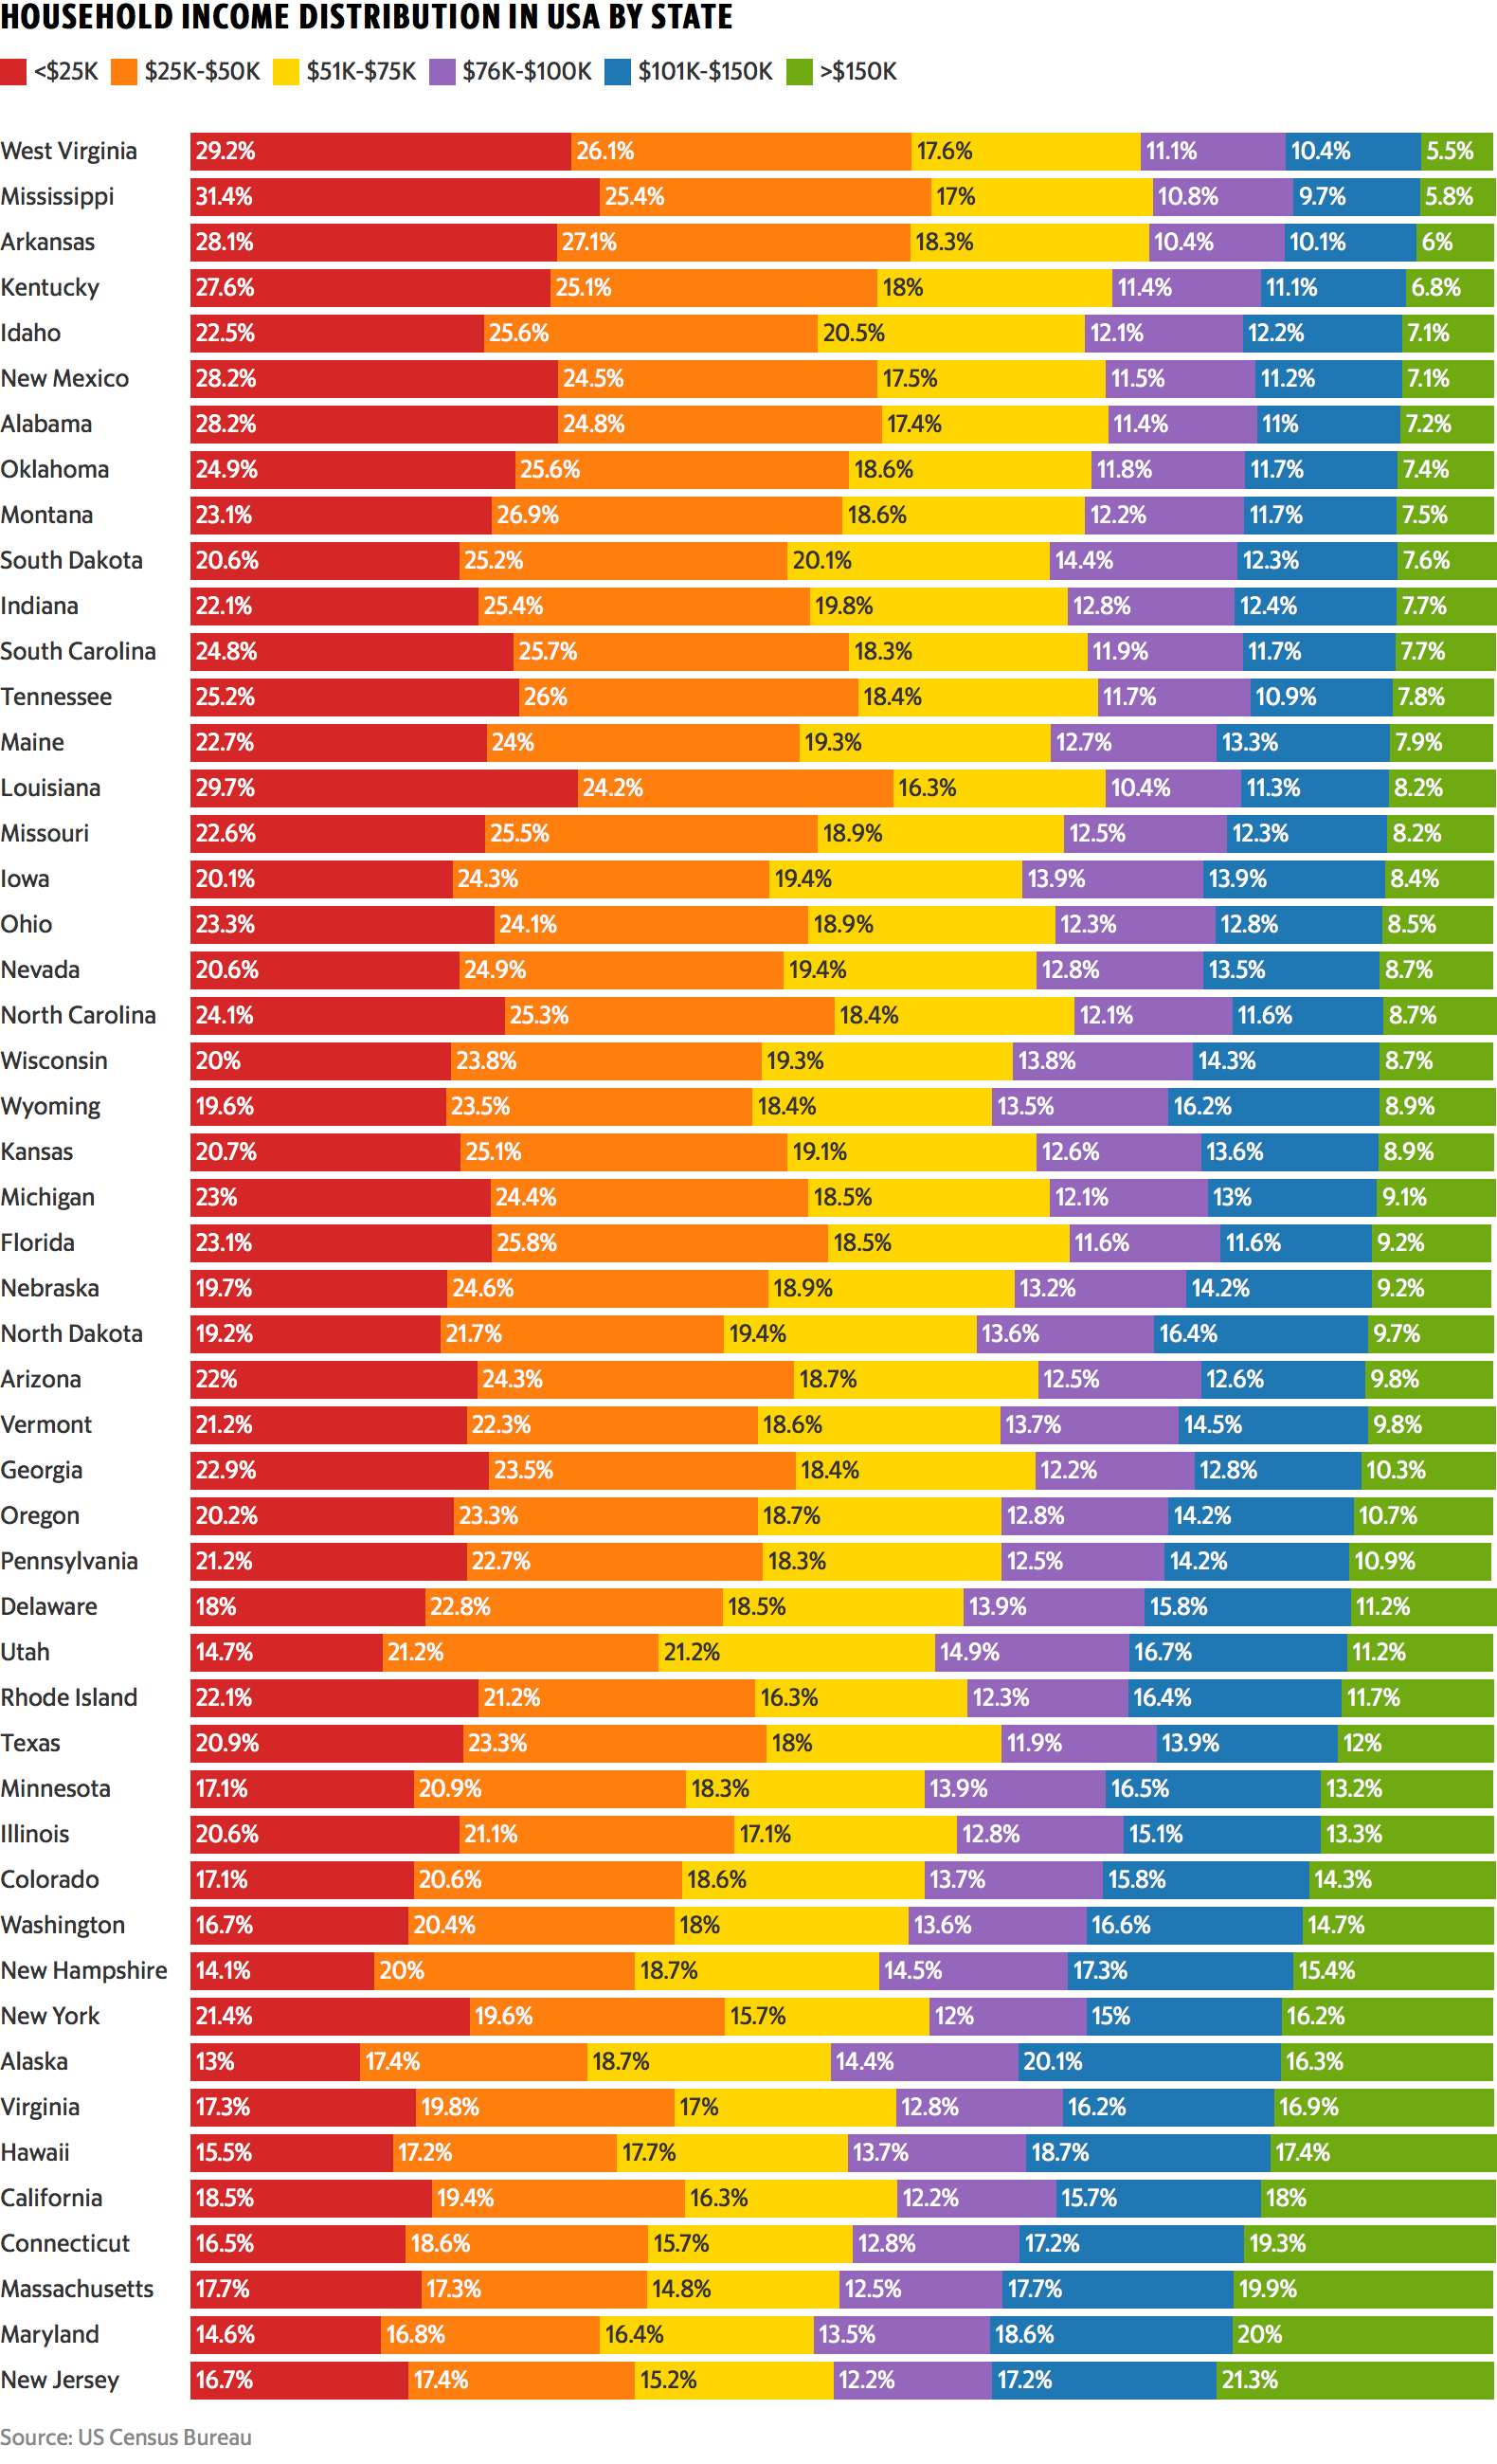 Visualizing Household Income Distribution in the U.S. by State